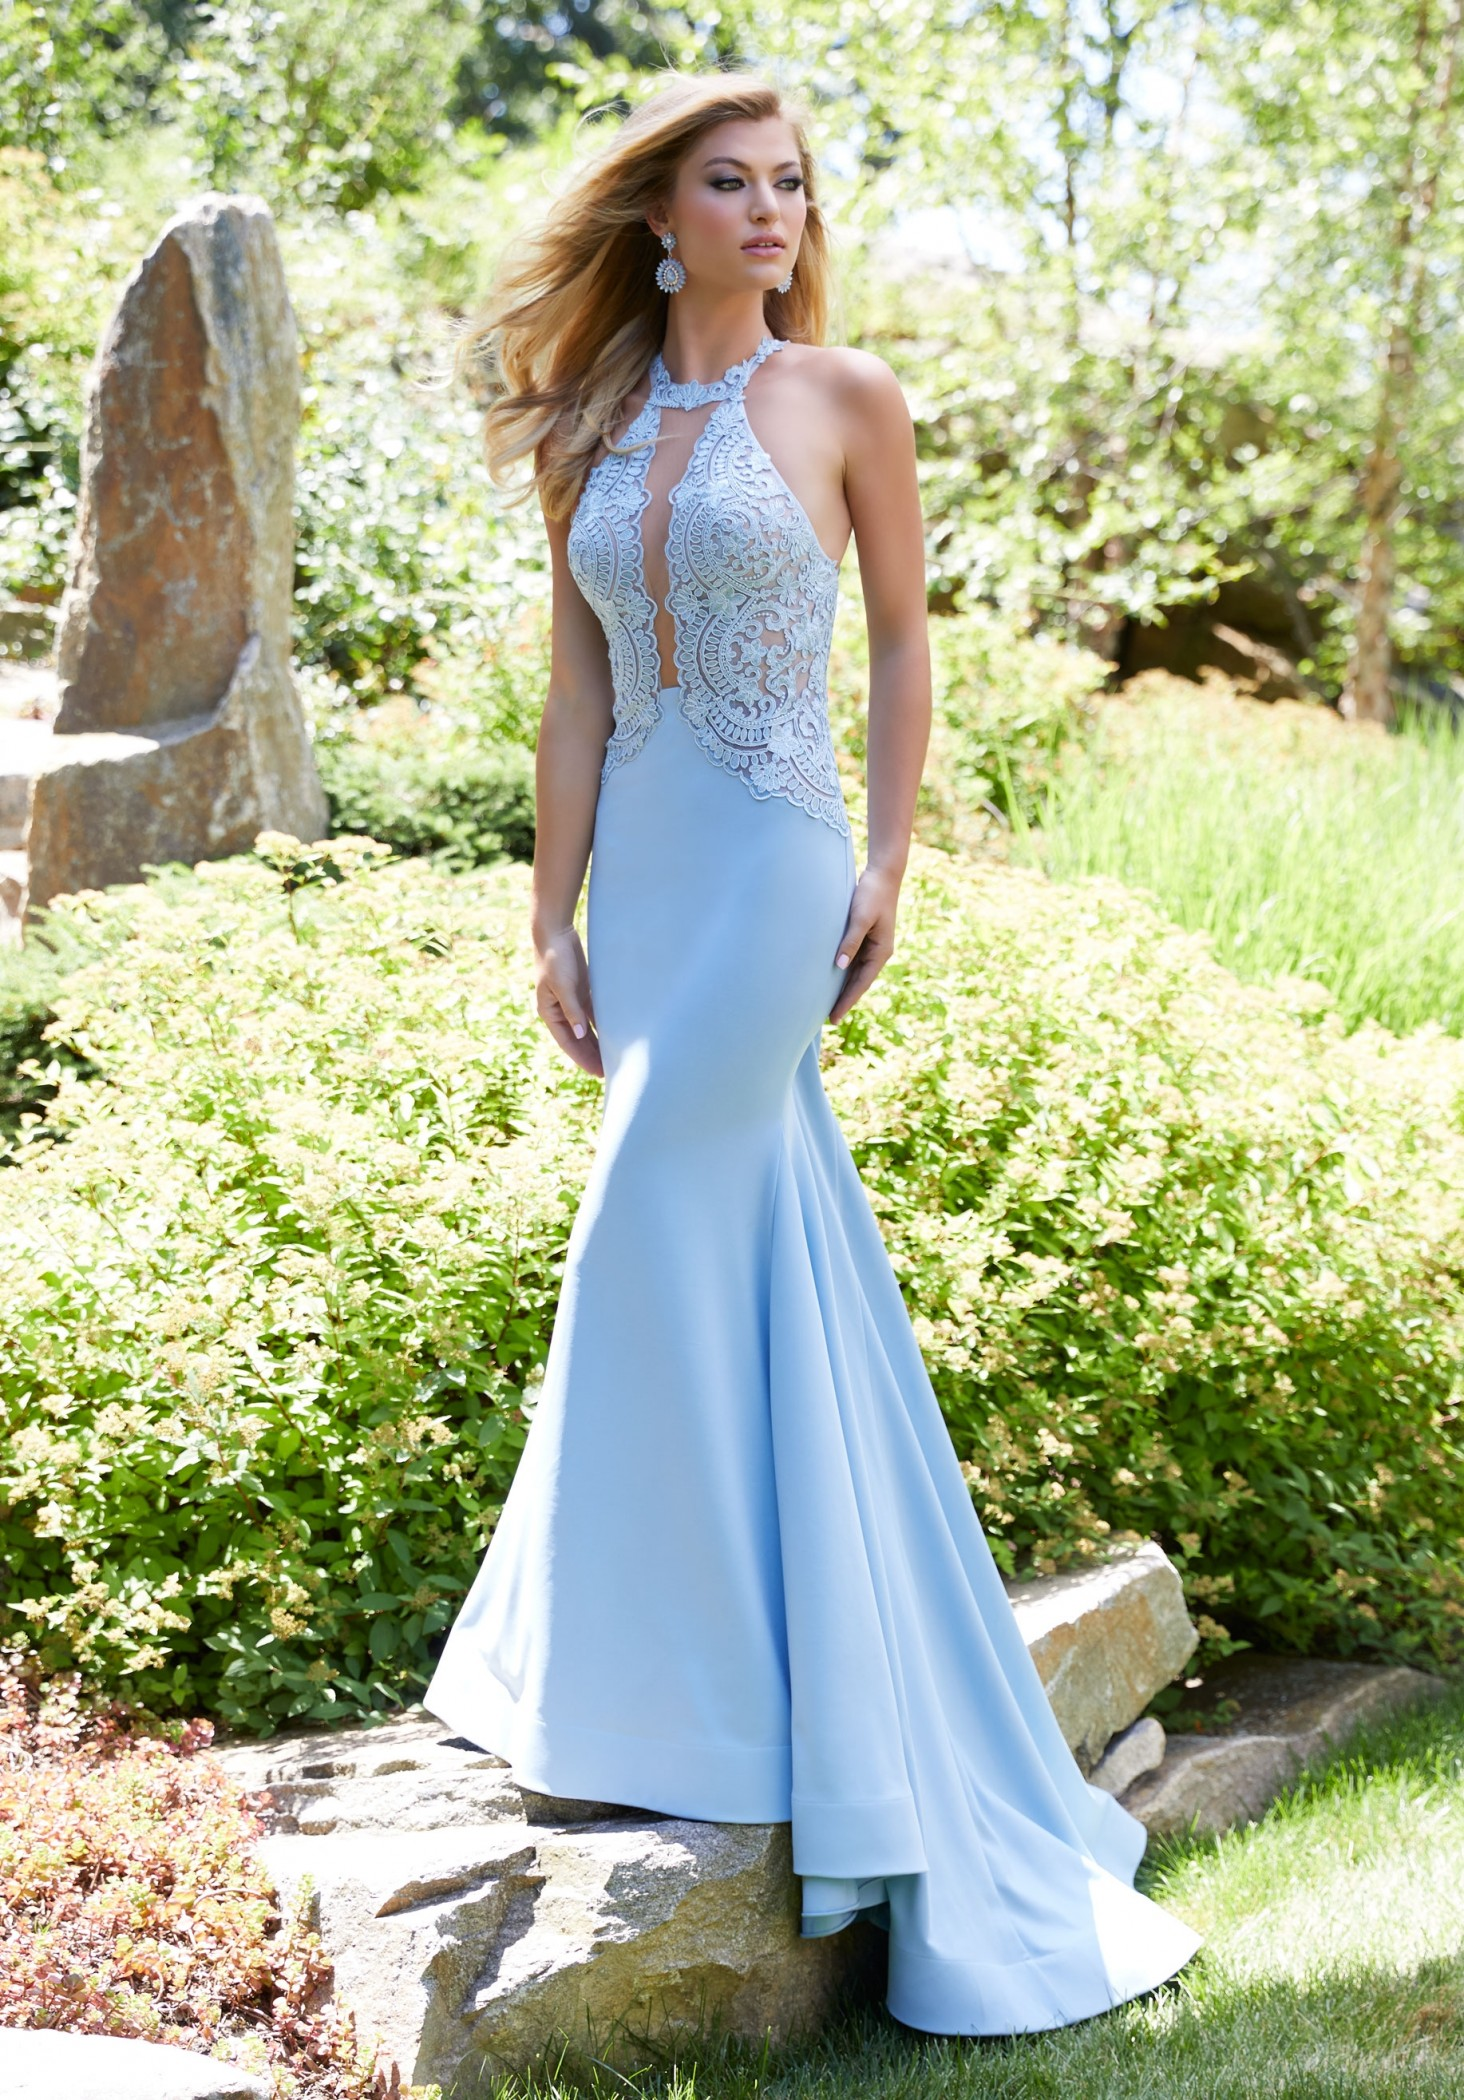 Mori Lee 43014 Sleek Lace Jersey Mermaid Dress